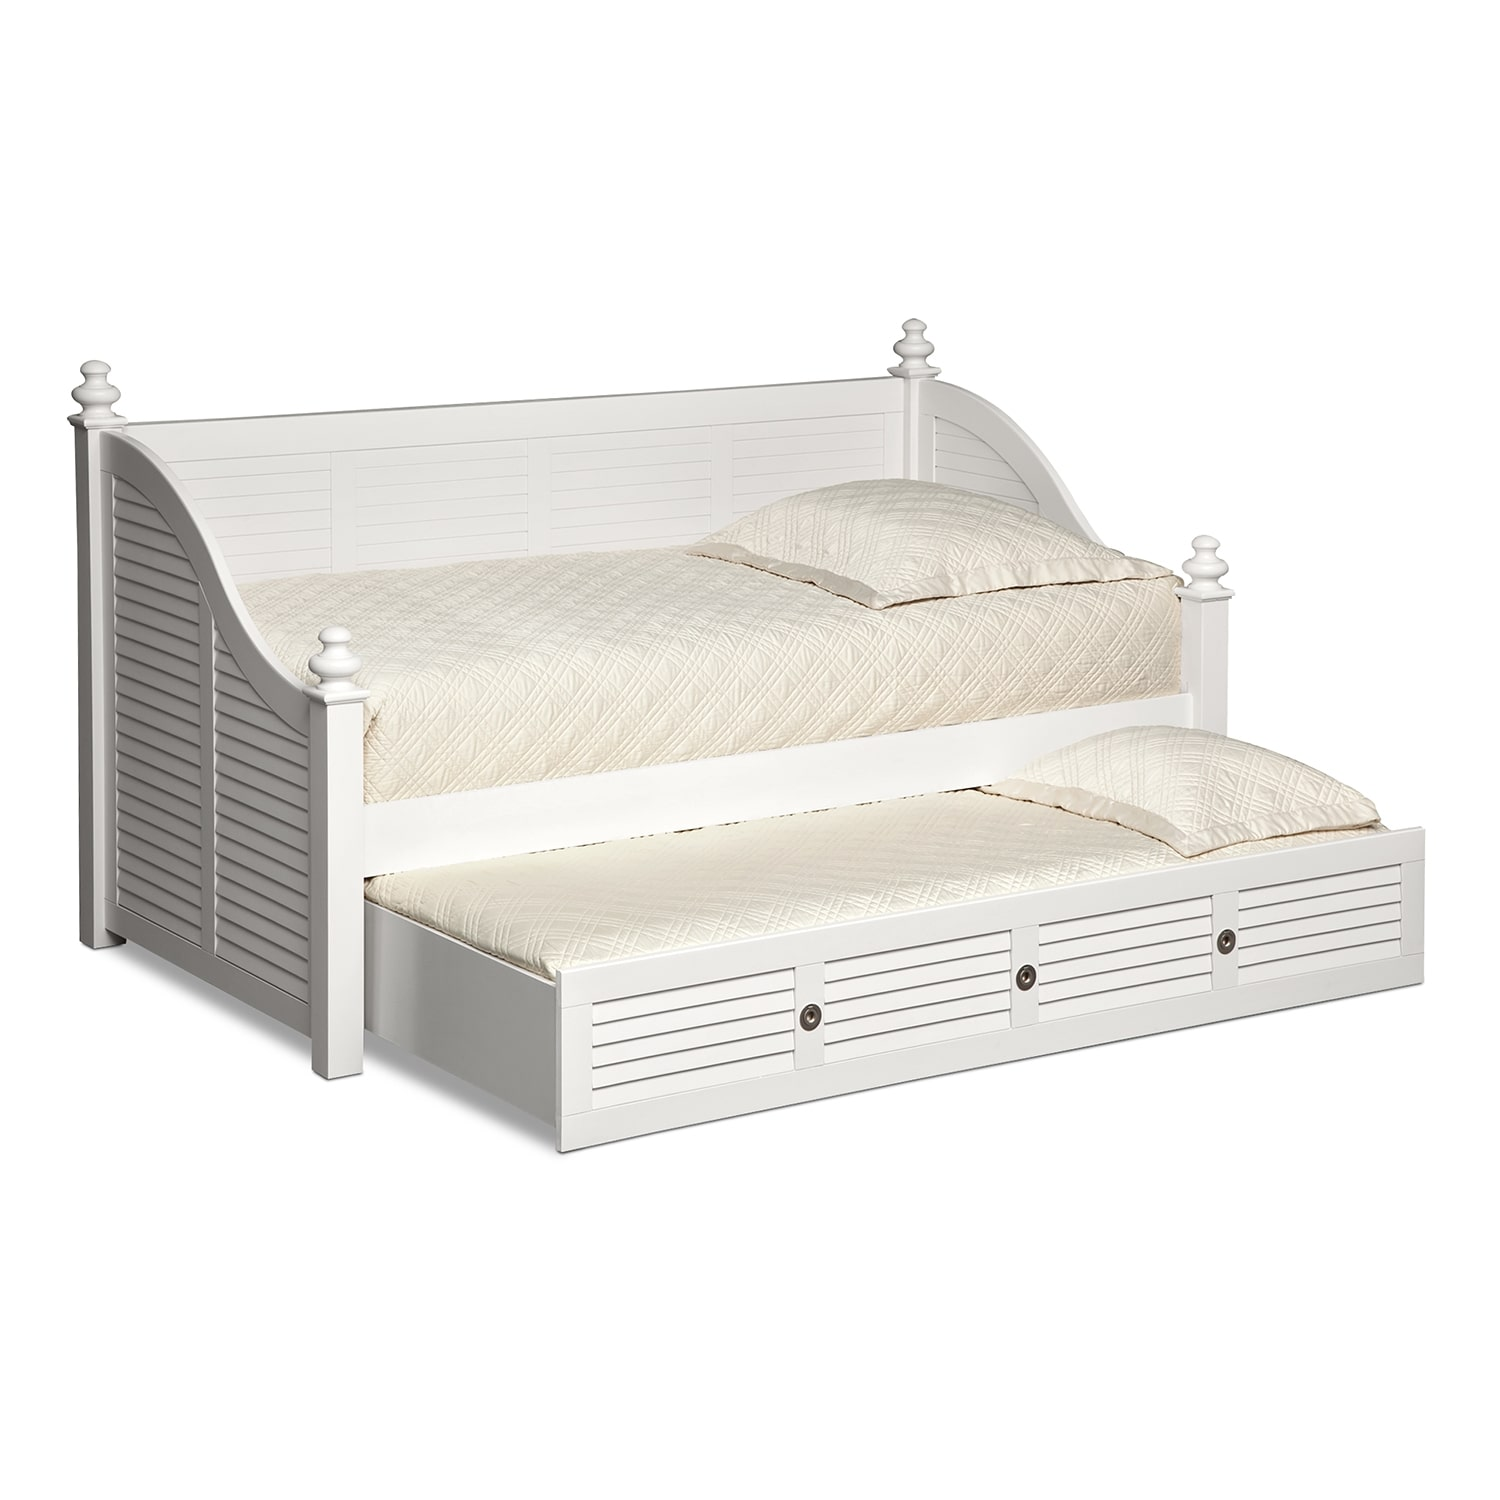 Seaside Twin Daybed with Trundle - White